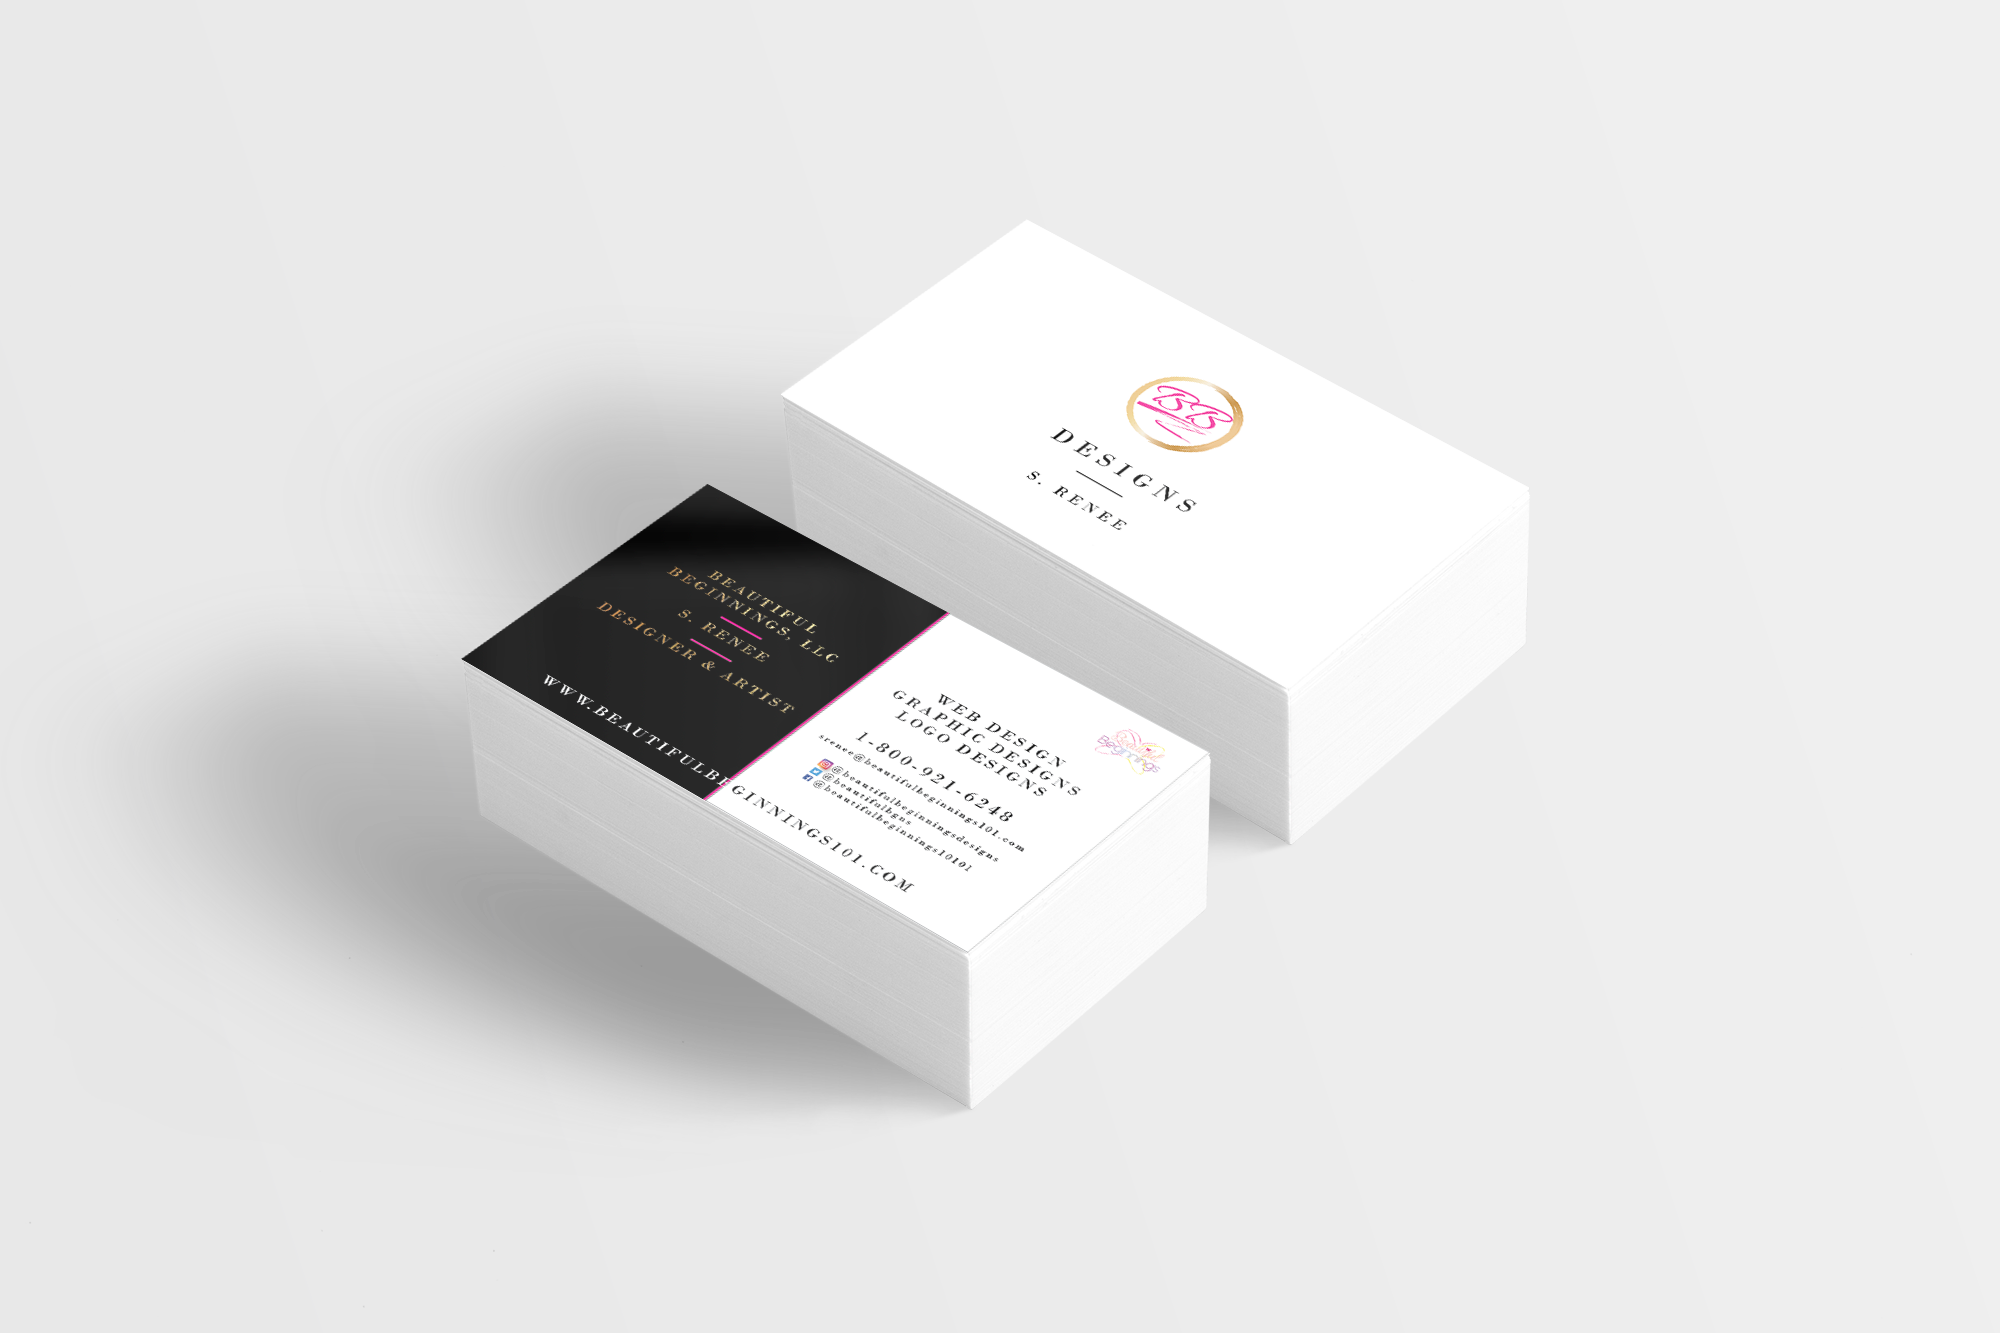 BEAUTIFUL BEGINNINGS DESIGNS NEW BUSINESS CARD MOCK UP 2018.png